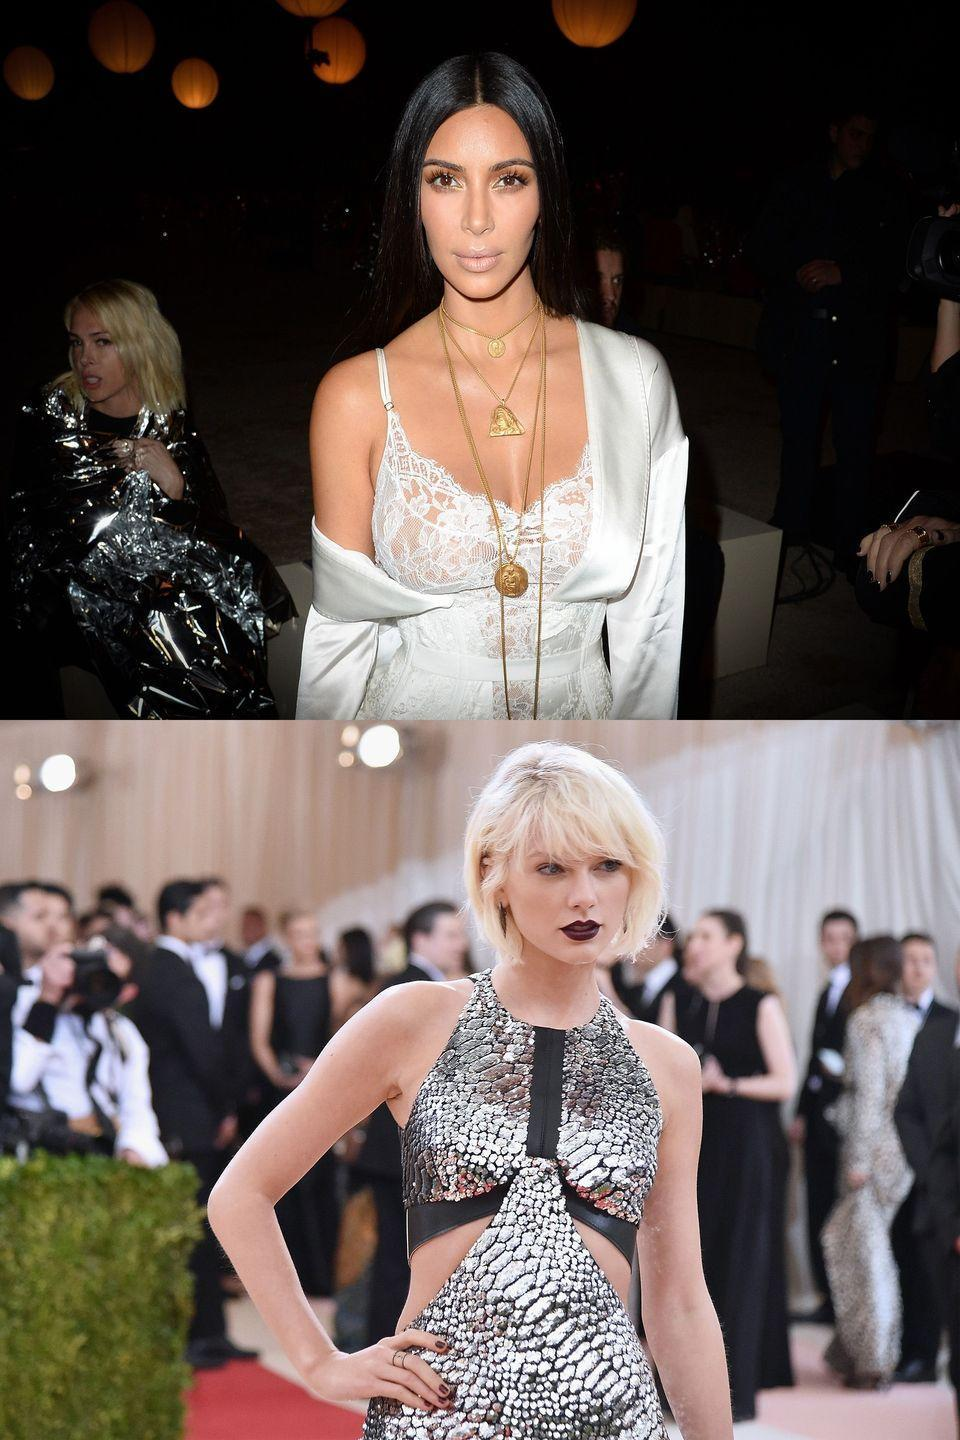 "<p>Seven years after Kanye West first crashed Swift's speech, he and his wife (The Notorious KKW) decided to reignite the feud, despite West having publicly reconciled with her at the VMAs in 2015. In February, West dropped ""Famous,"" which included the lines, ""I feel like me and Taylor might still have sex / Why? I made that bitch famous."" West said Swift had given him approval for the song, but she denied it. In the <a href=""http://www.gq.com/story/kim-kardashian-west-gq-cover-story"" rel=""nofollow noopener"" target=""_blank"" data-ylk=""slk:July issue of GQ"" class=""link rapid-noclick-resp"">July issue of <em>GQ</em></a>, Kardashian slammed Swift saying, ""She totally approved that … She wanted to all of a sudden act like she didn't."" Then the real bombshell came. After an episode of <em>Keeping Up With the Kardashians</em> focused on the incident, Kardashian <a href=""http://people.com/celebrity/a-timeline-of-the-complicated-relationship-between-taylor-swift-and-kim-kardashian-west/"" rel=""nofollow noopener"" target=""_blank"" data-ylk=""slk:took to Snapchat"" class=""link rapid-noclick-resp"">took to Snapchat</a> to post video proof of Swift and West discussing the song. Notably, the ""sex"" line was heard, but not ""that bitch."" Nevertheless, the internet sided with Kardashian, with the hashtag #KimExposedTaylorParty trending. Swift rested her case <a href=""https://www.instagram.com/p/BH_TCz4DeSj/"" rel=""nofollow noopener"" target=""_blank"" data-ylk=""slk:on Instagram"" class=""link rapid-noclick-resp"">on Instagram</a>, ending with the much-mocked line, ""I would very much like to be excluded from this narrative, one that I have never asked to be a part of, since 2009.""</p>"